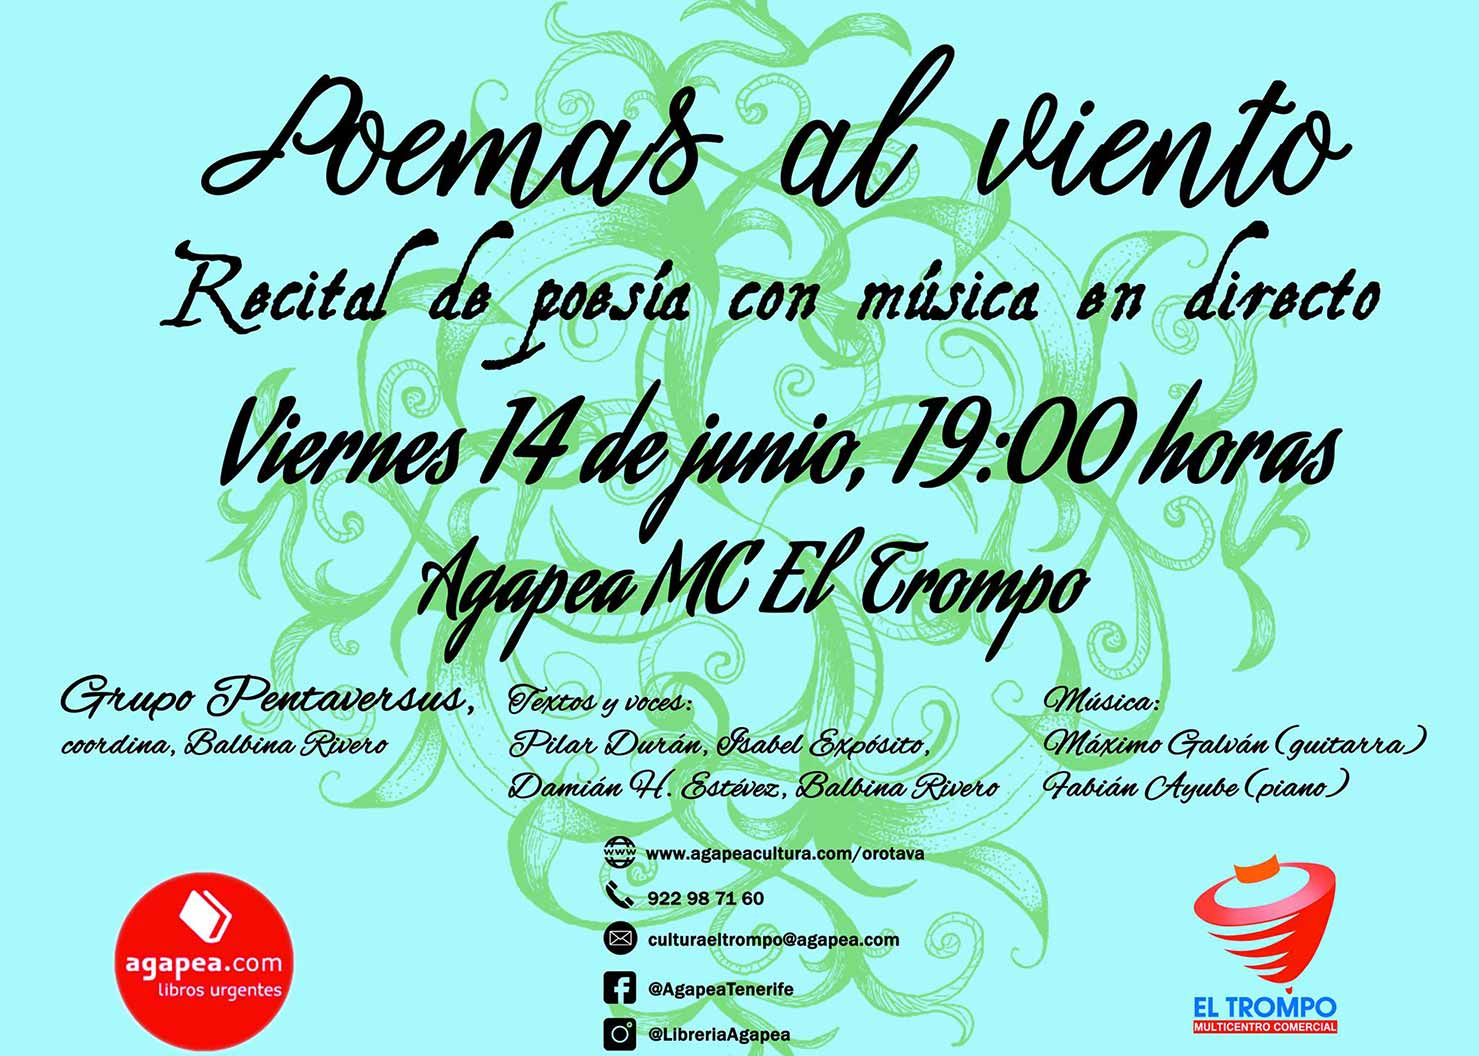 poemasviento-evento